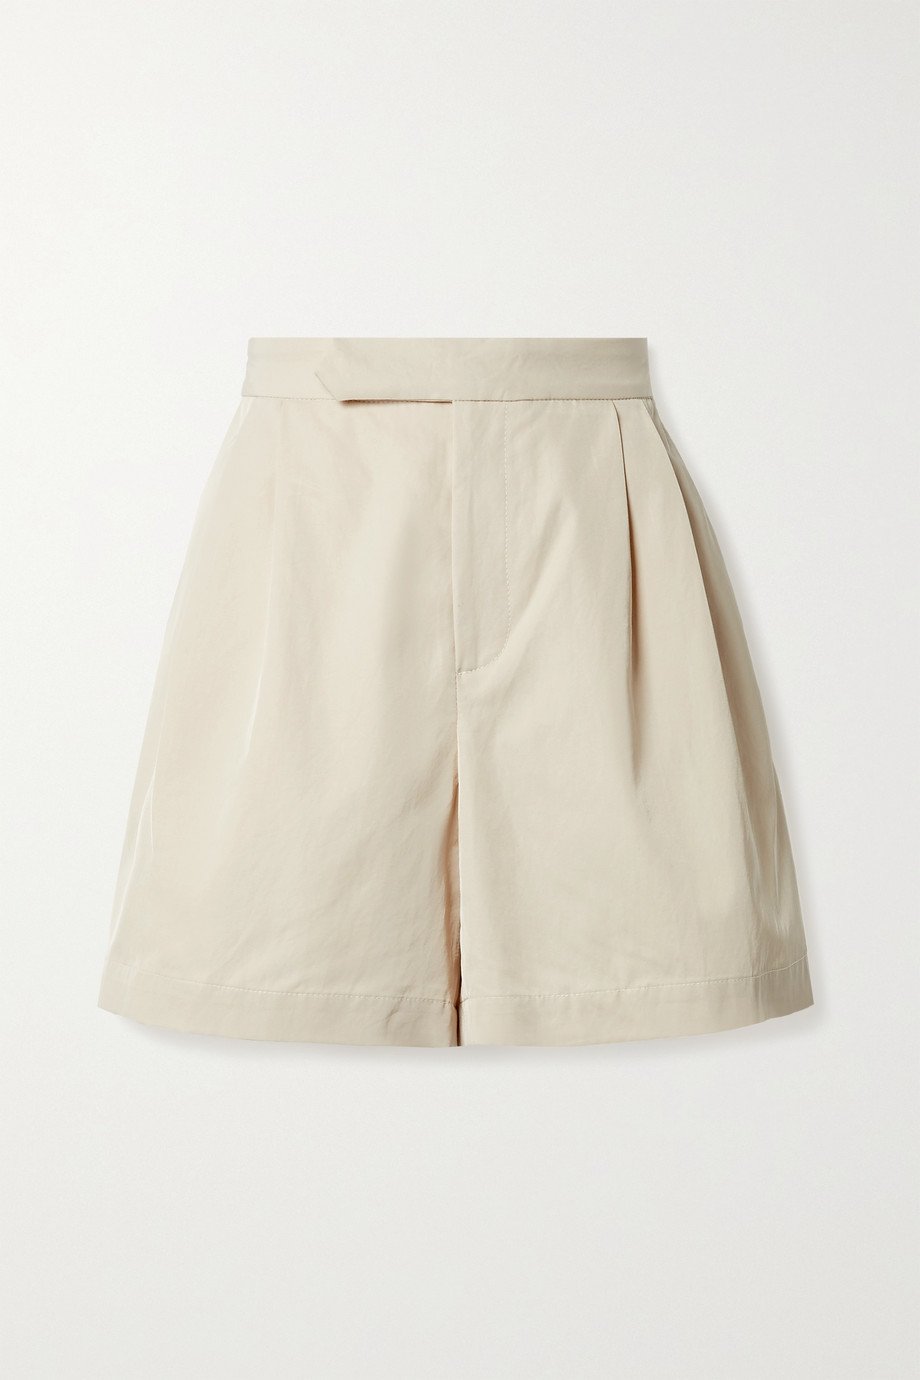 DEVEAUX Veronique pleated twill shorts